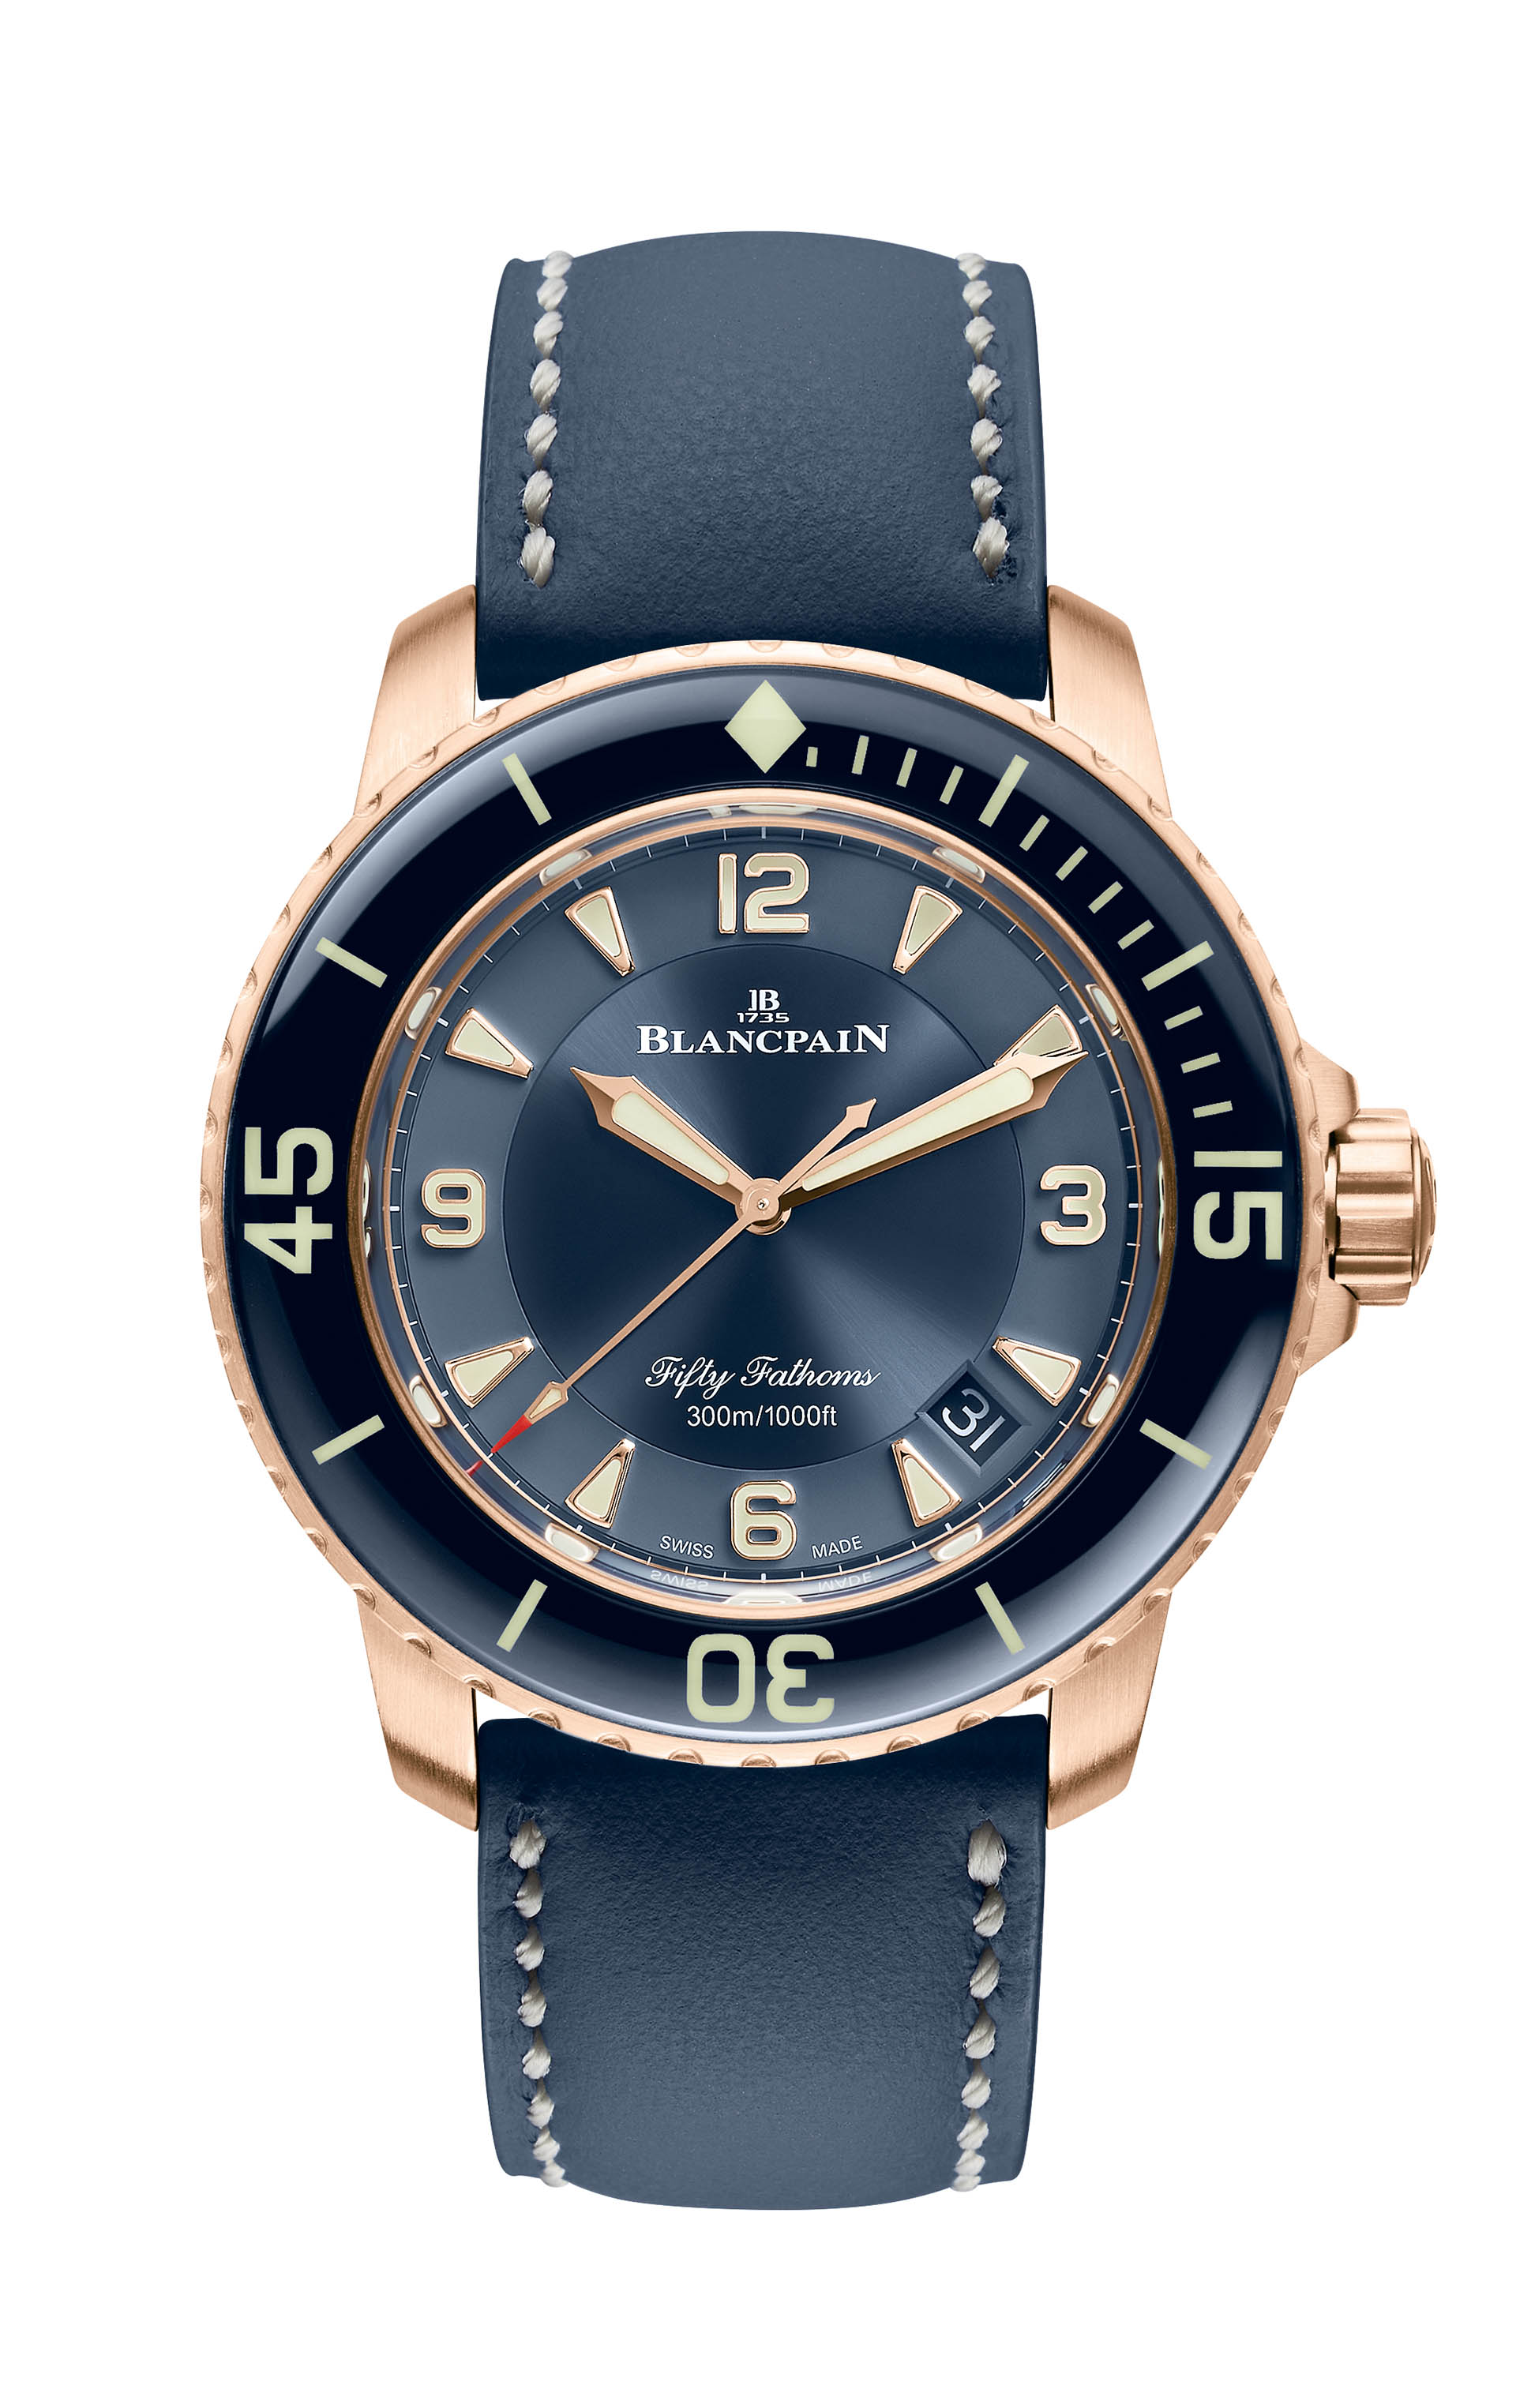 Blancpain Fifty Fathoms Automatique Keramik